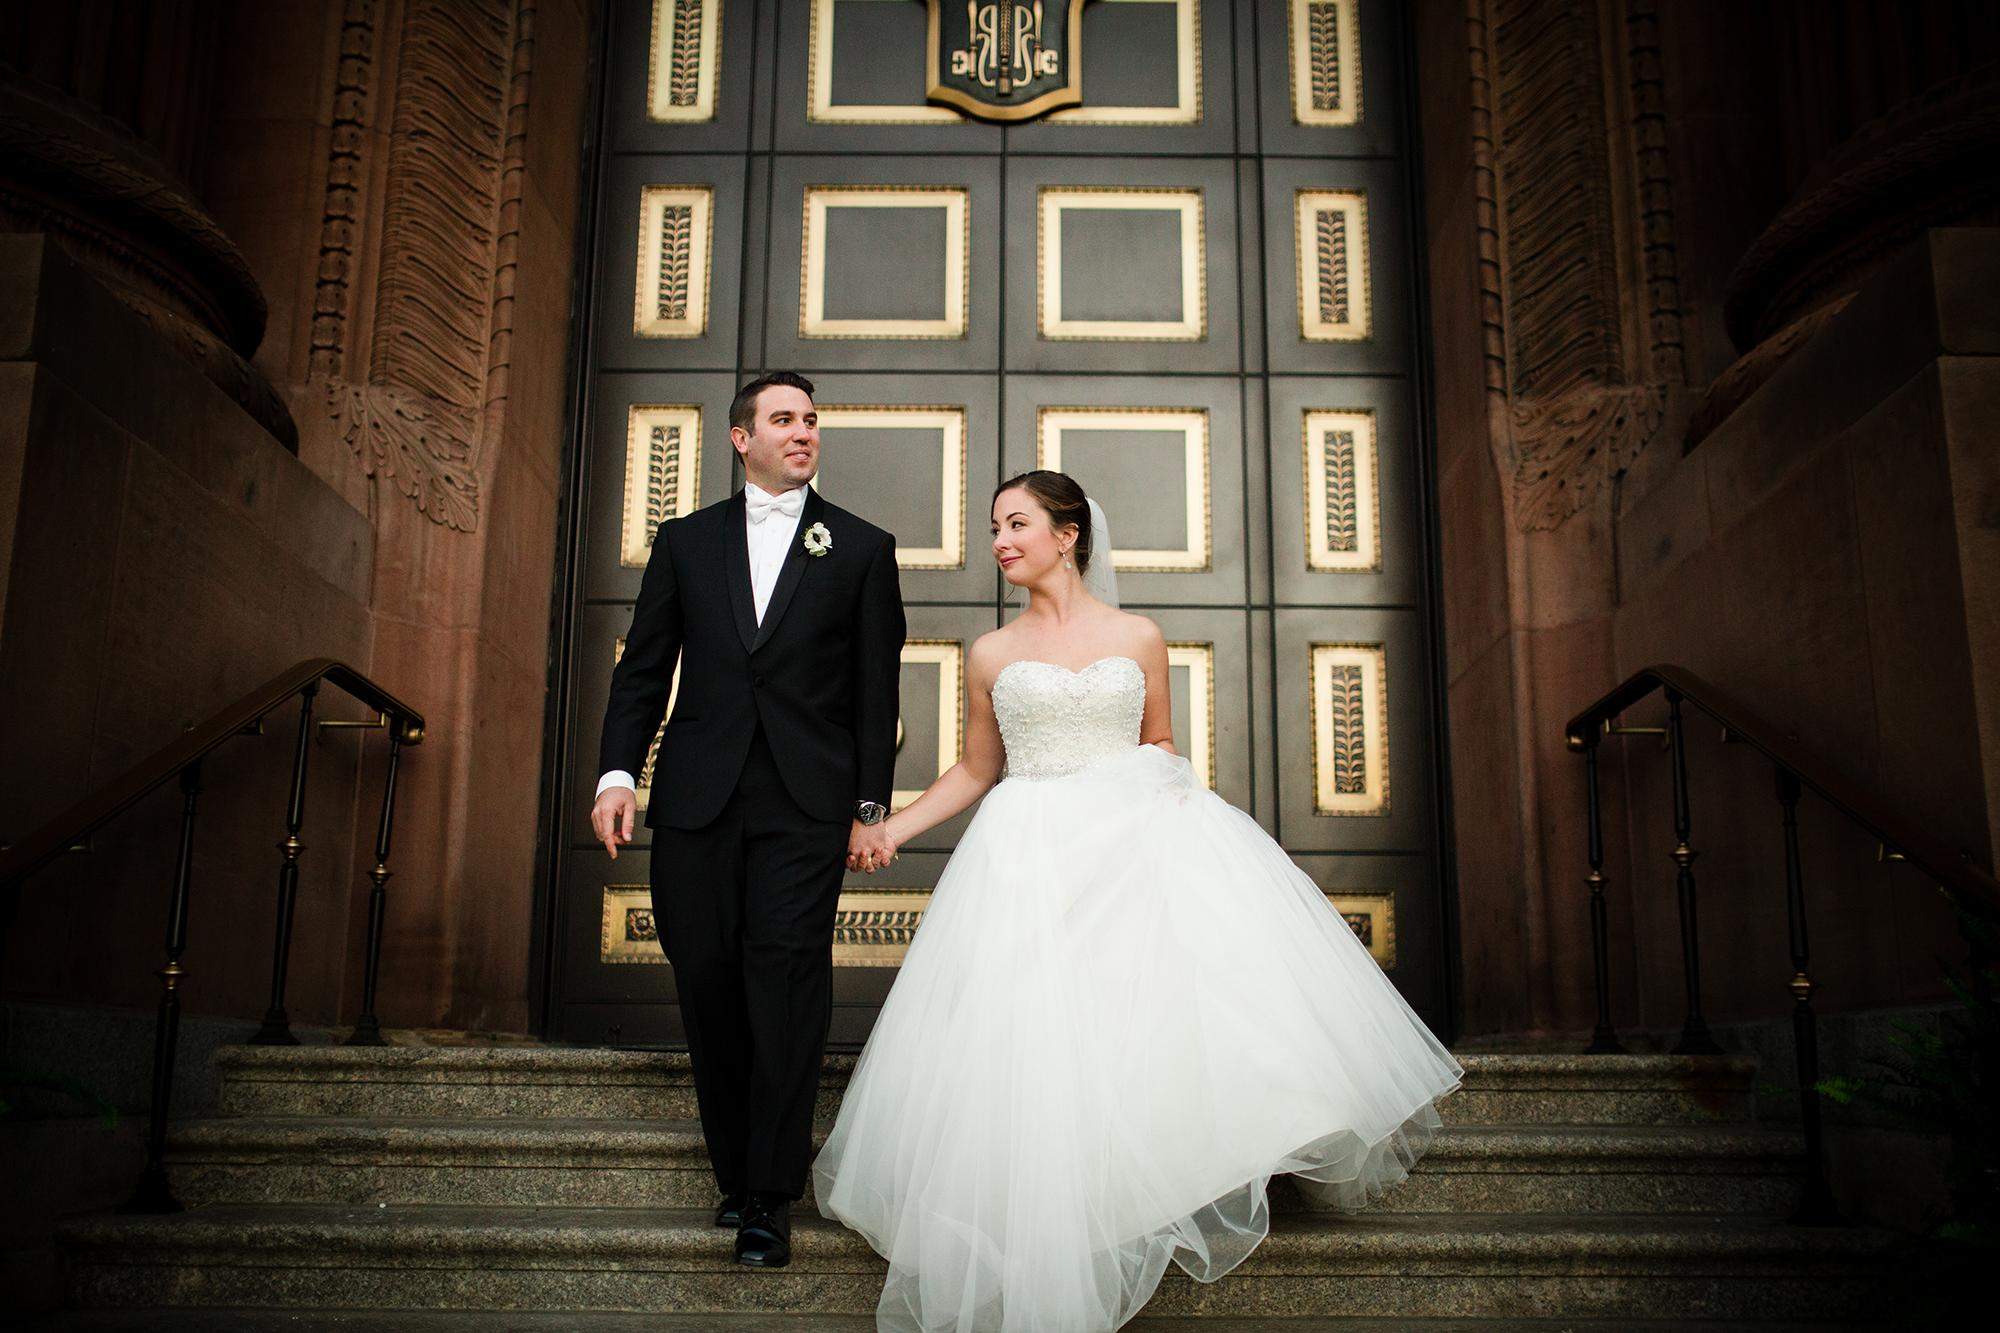 Bellevue Philadelphia Wedding Papertini Asya Photography